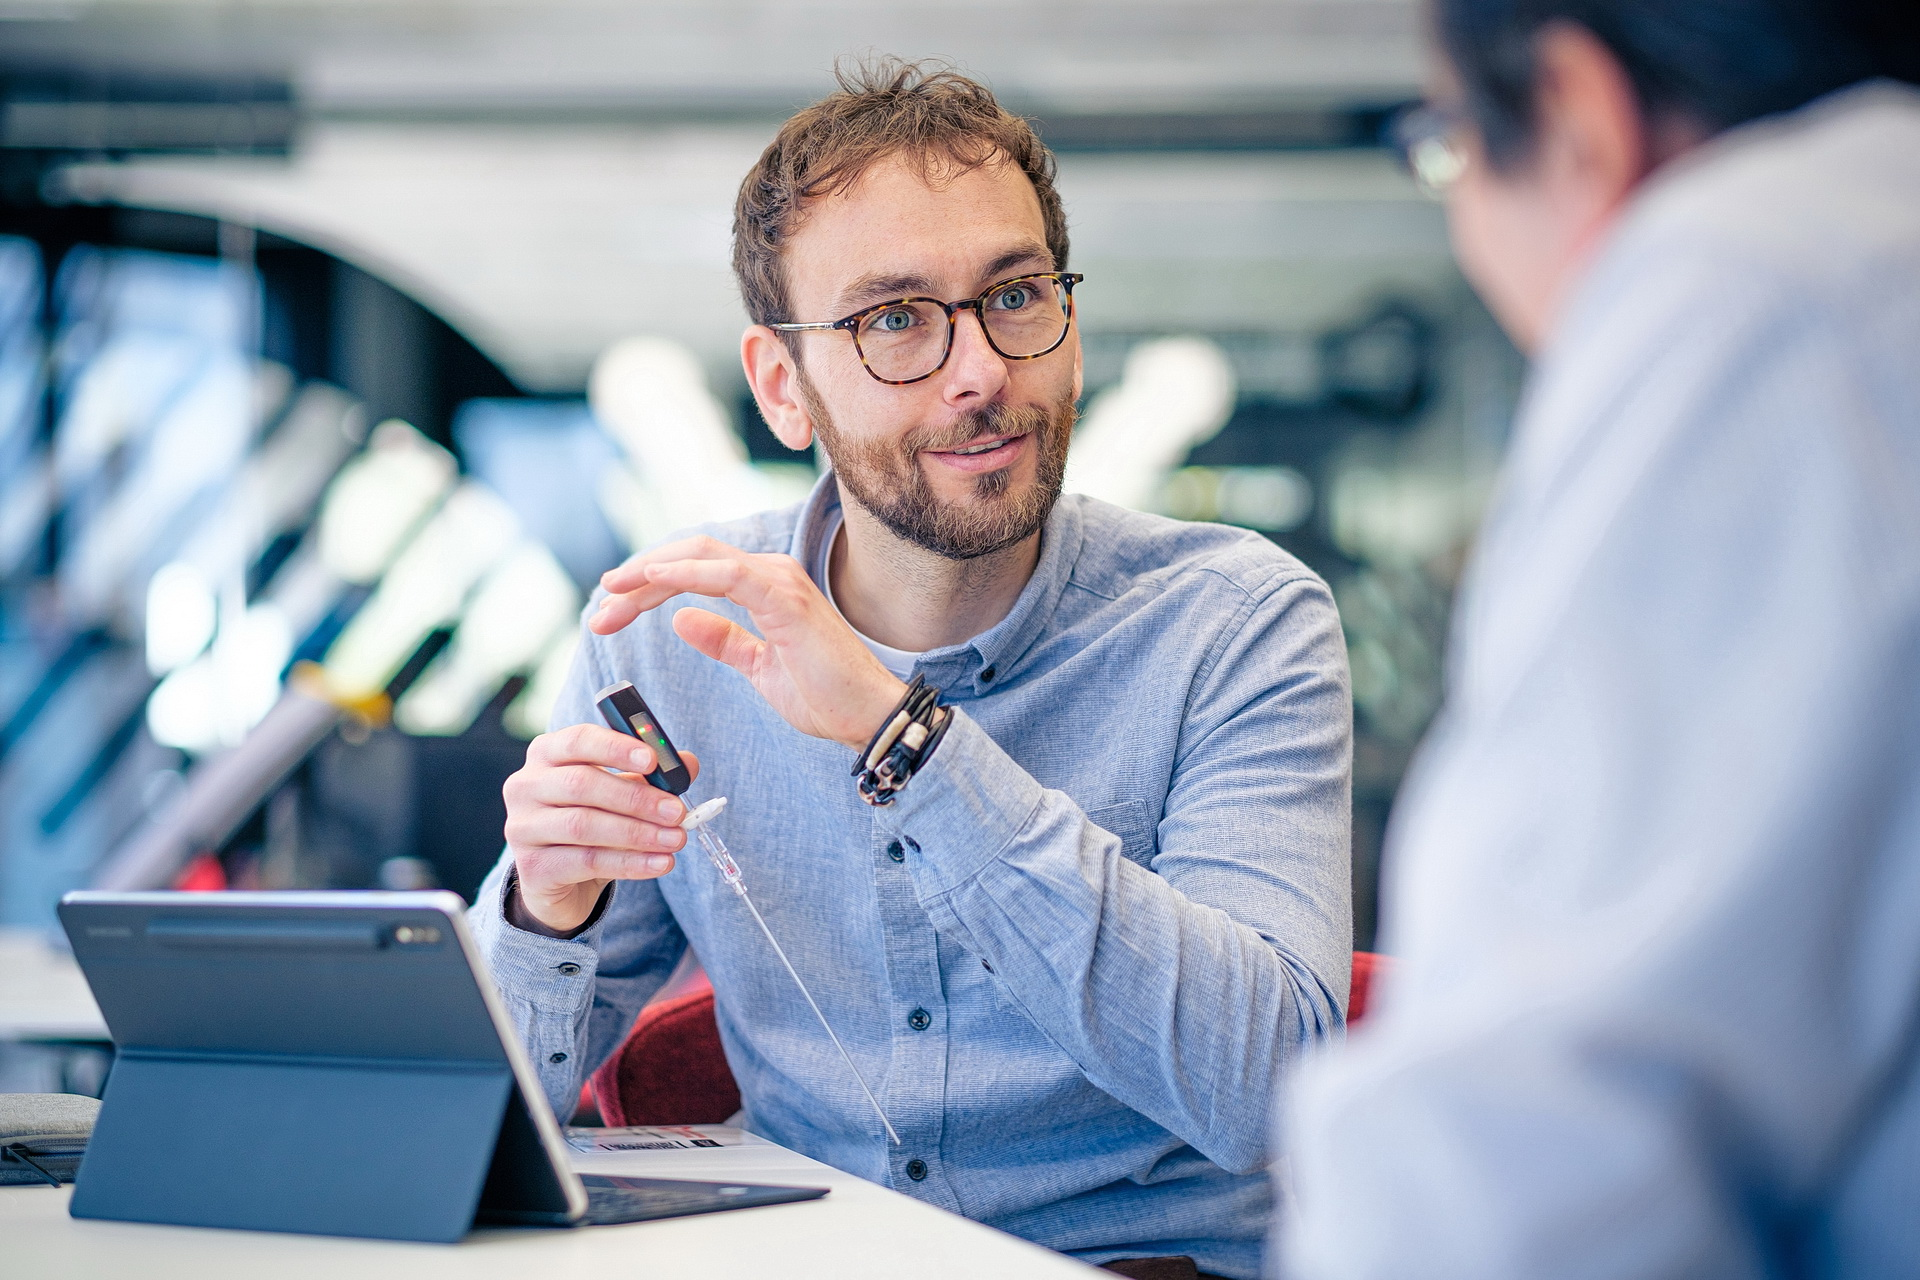 A man talks to another man while holding a prototype in his hands.